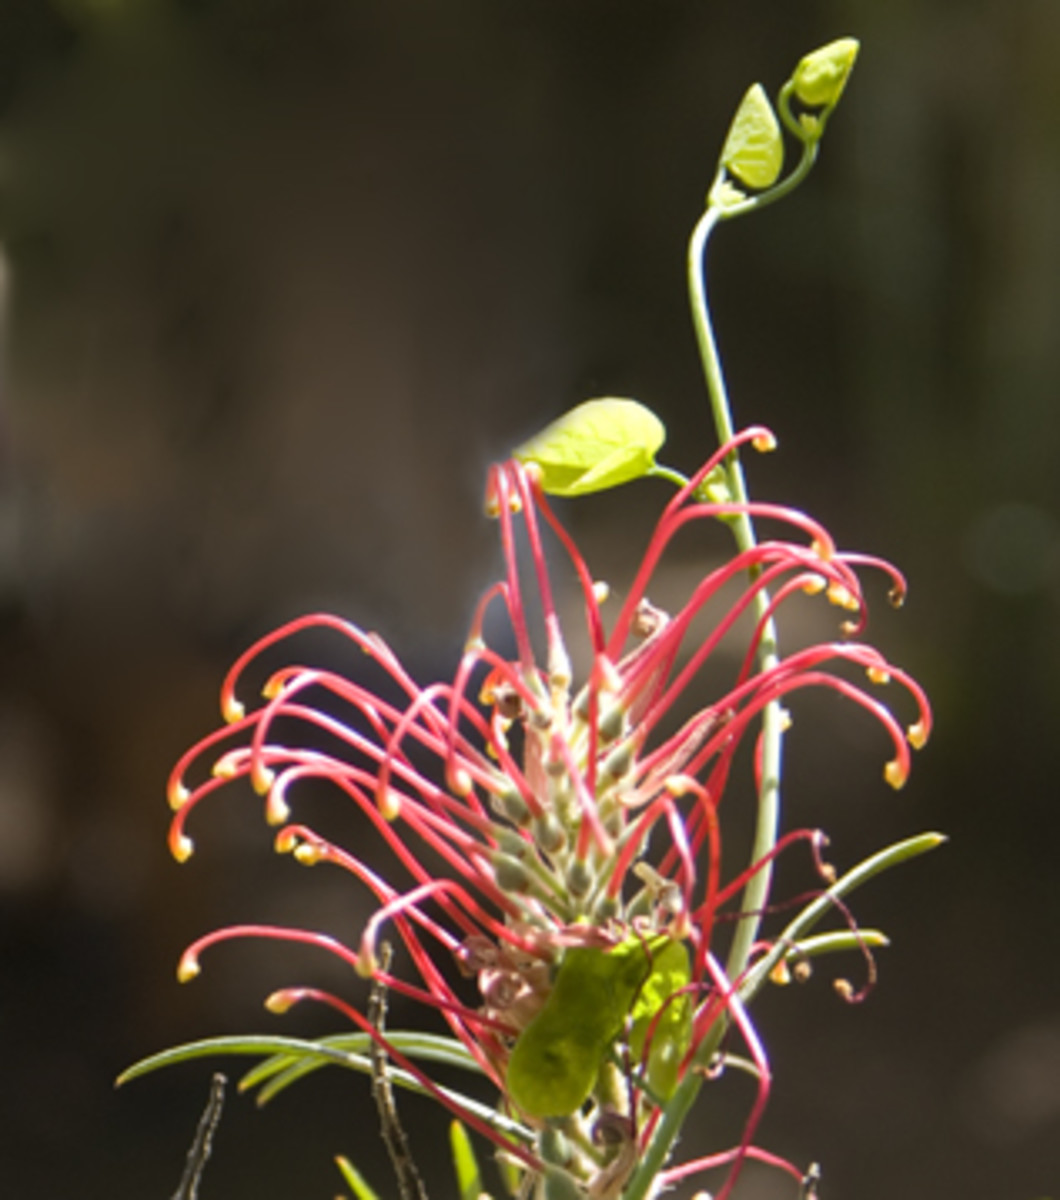 The flower of a small tree.  The vine tip is part of the plant that made the unusual flower in the photo above.